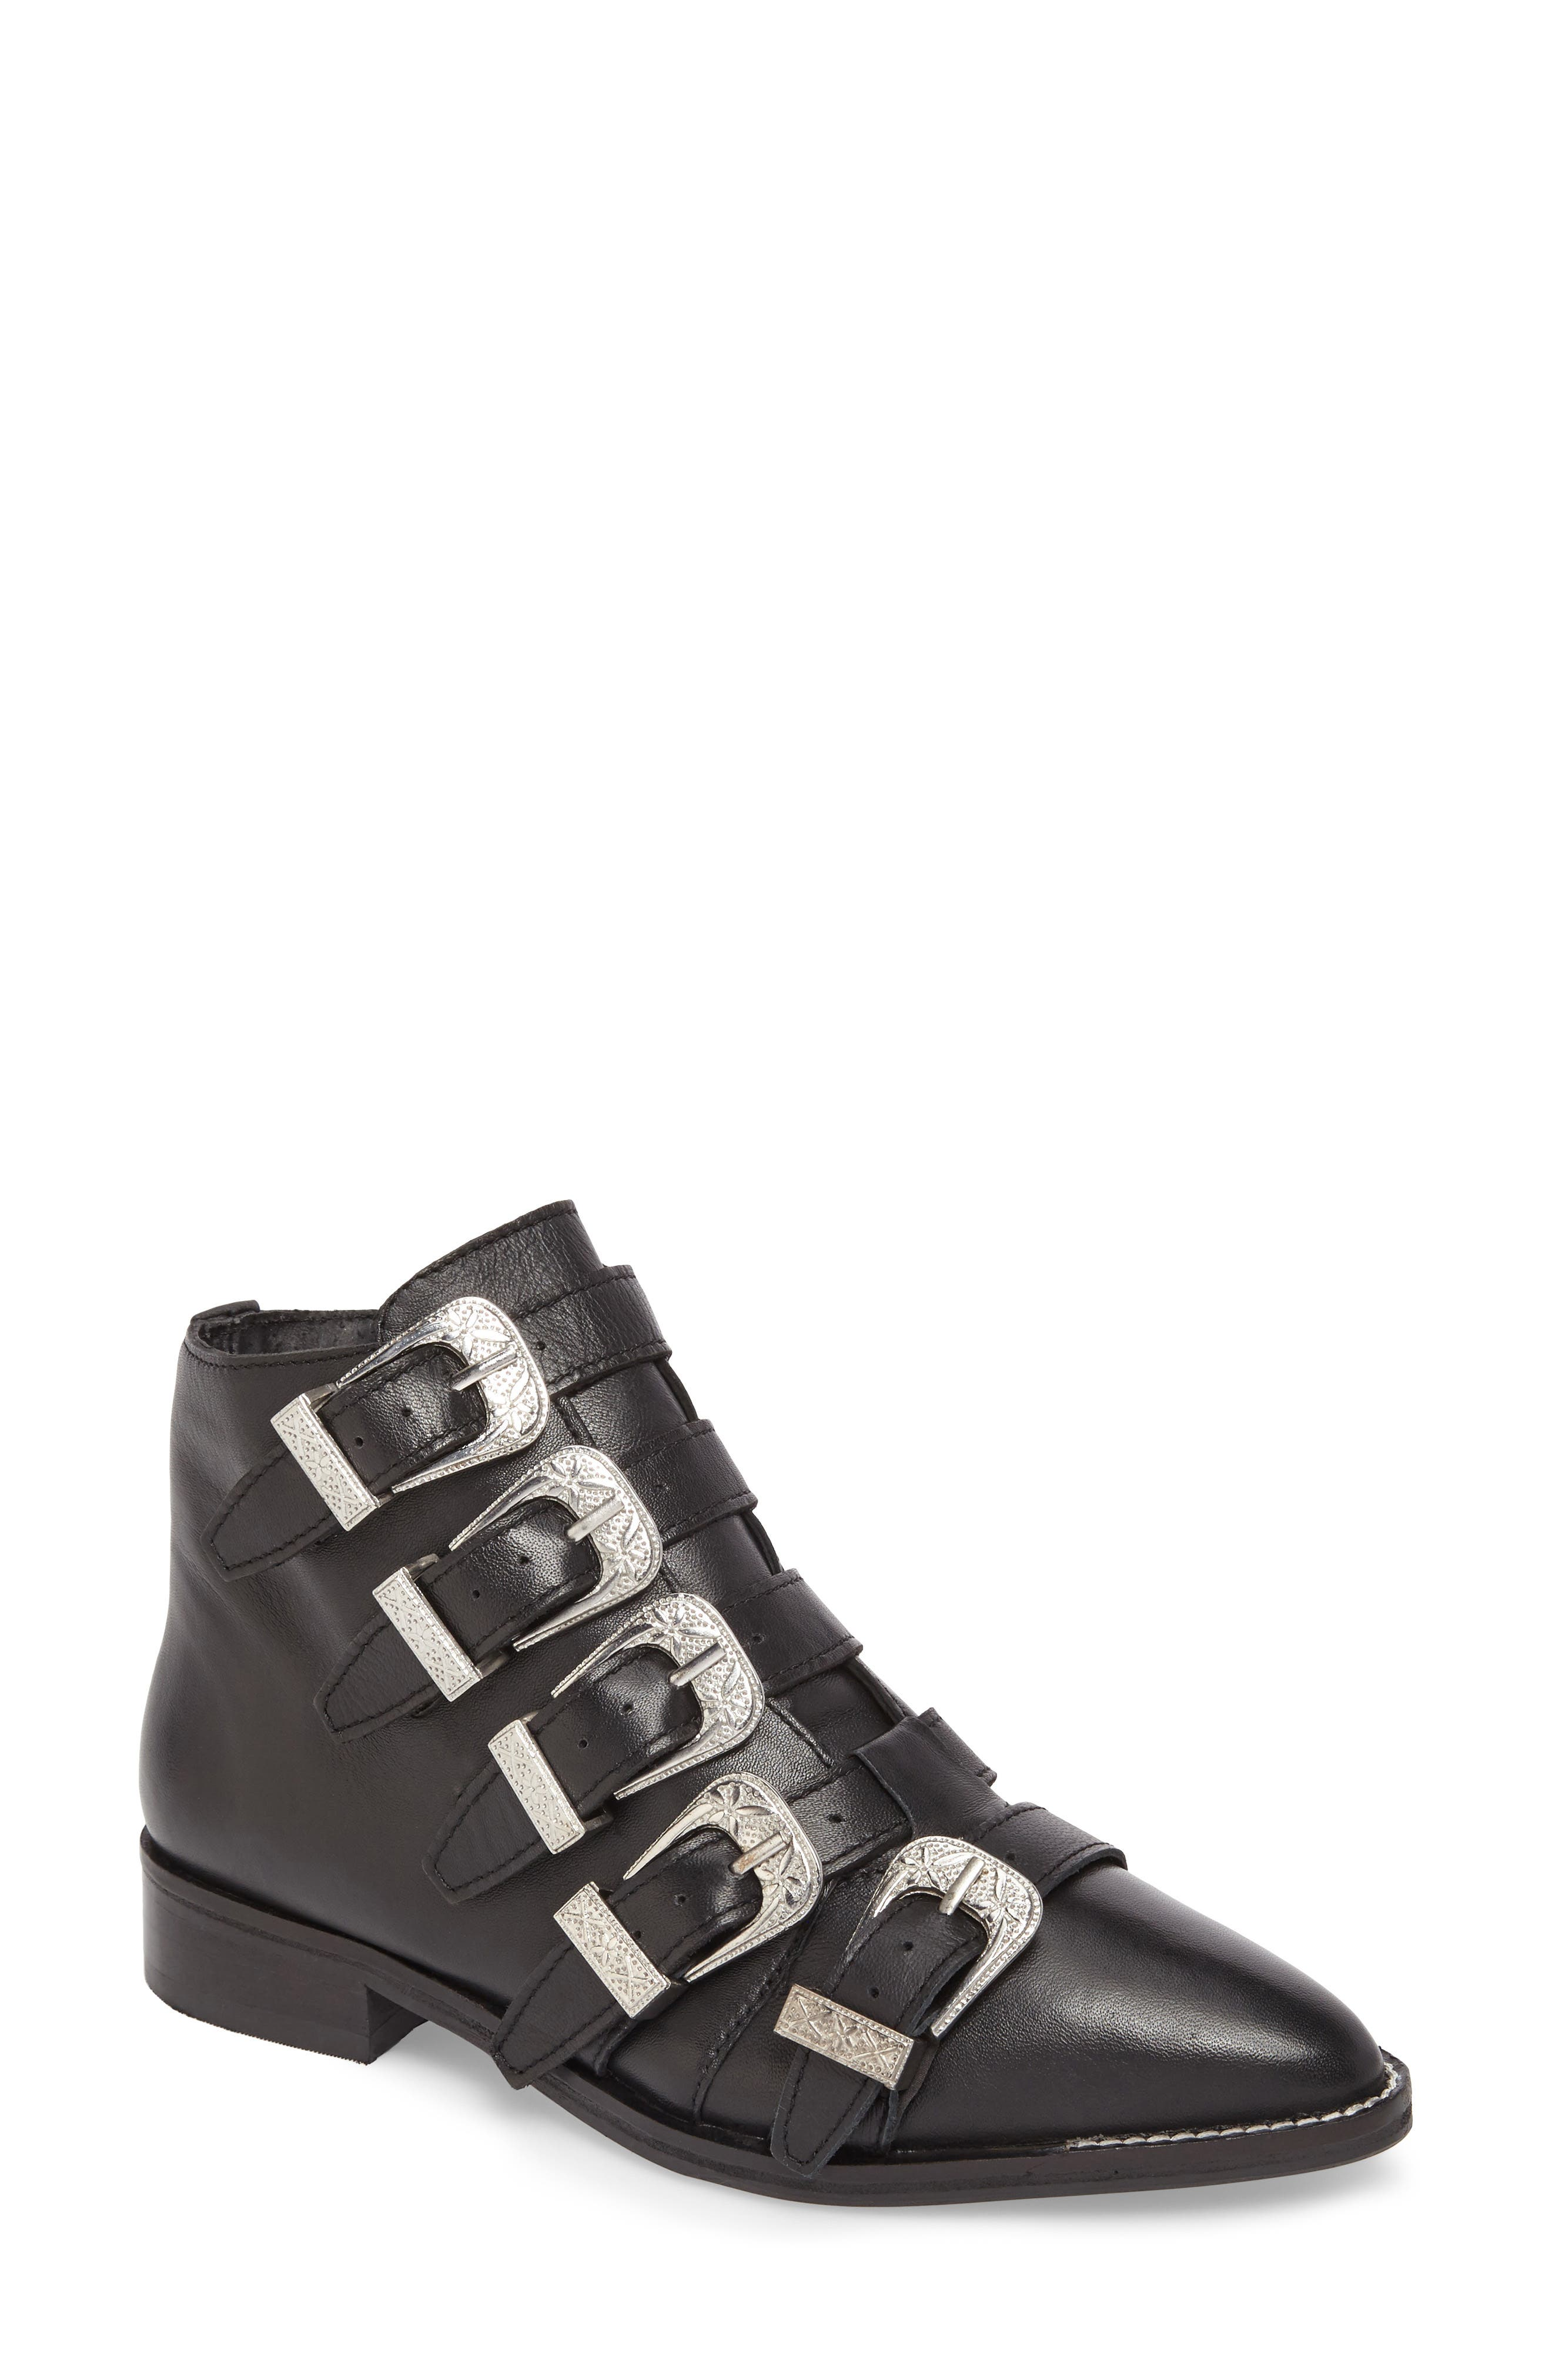 Topshop Andi Multi Buckle Boot (Women)